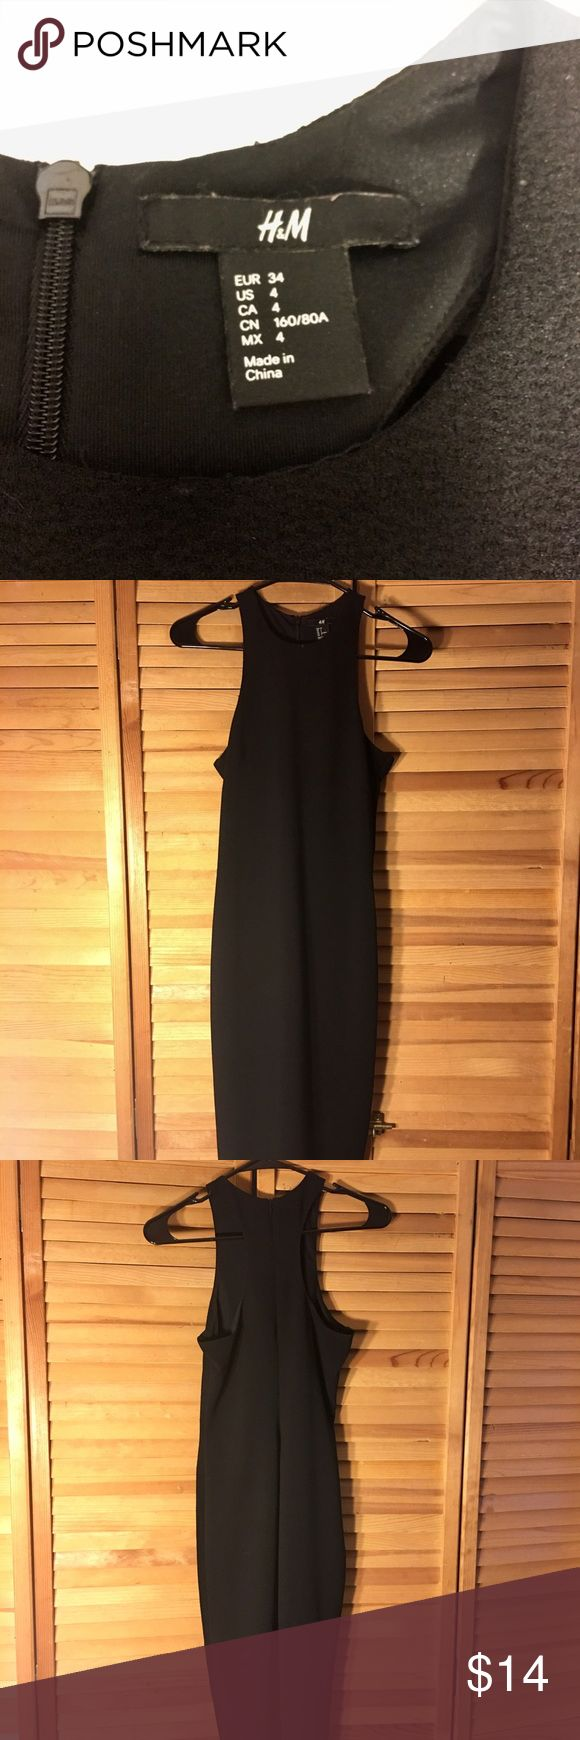 H&M Size 4 (EUR 34) knee length black dress This black H&M knee length size four dress has been worn a handful of time. It's in great condition. It's comfortable and you're able to move around in it. It's perfect for weddings or a even wearing out for the night. You can dress it up or make it more casual with a leather jacket and pair of adidas tennis. H&M Dresses Midi